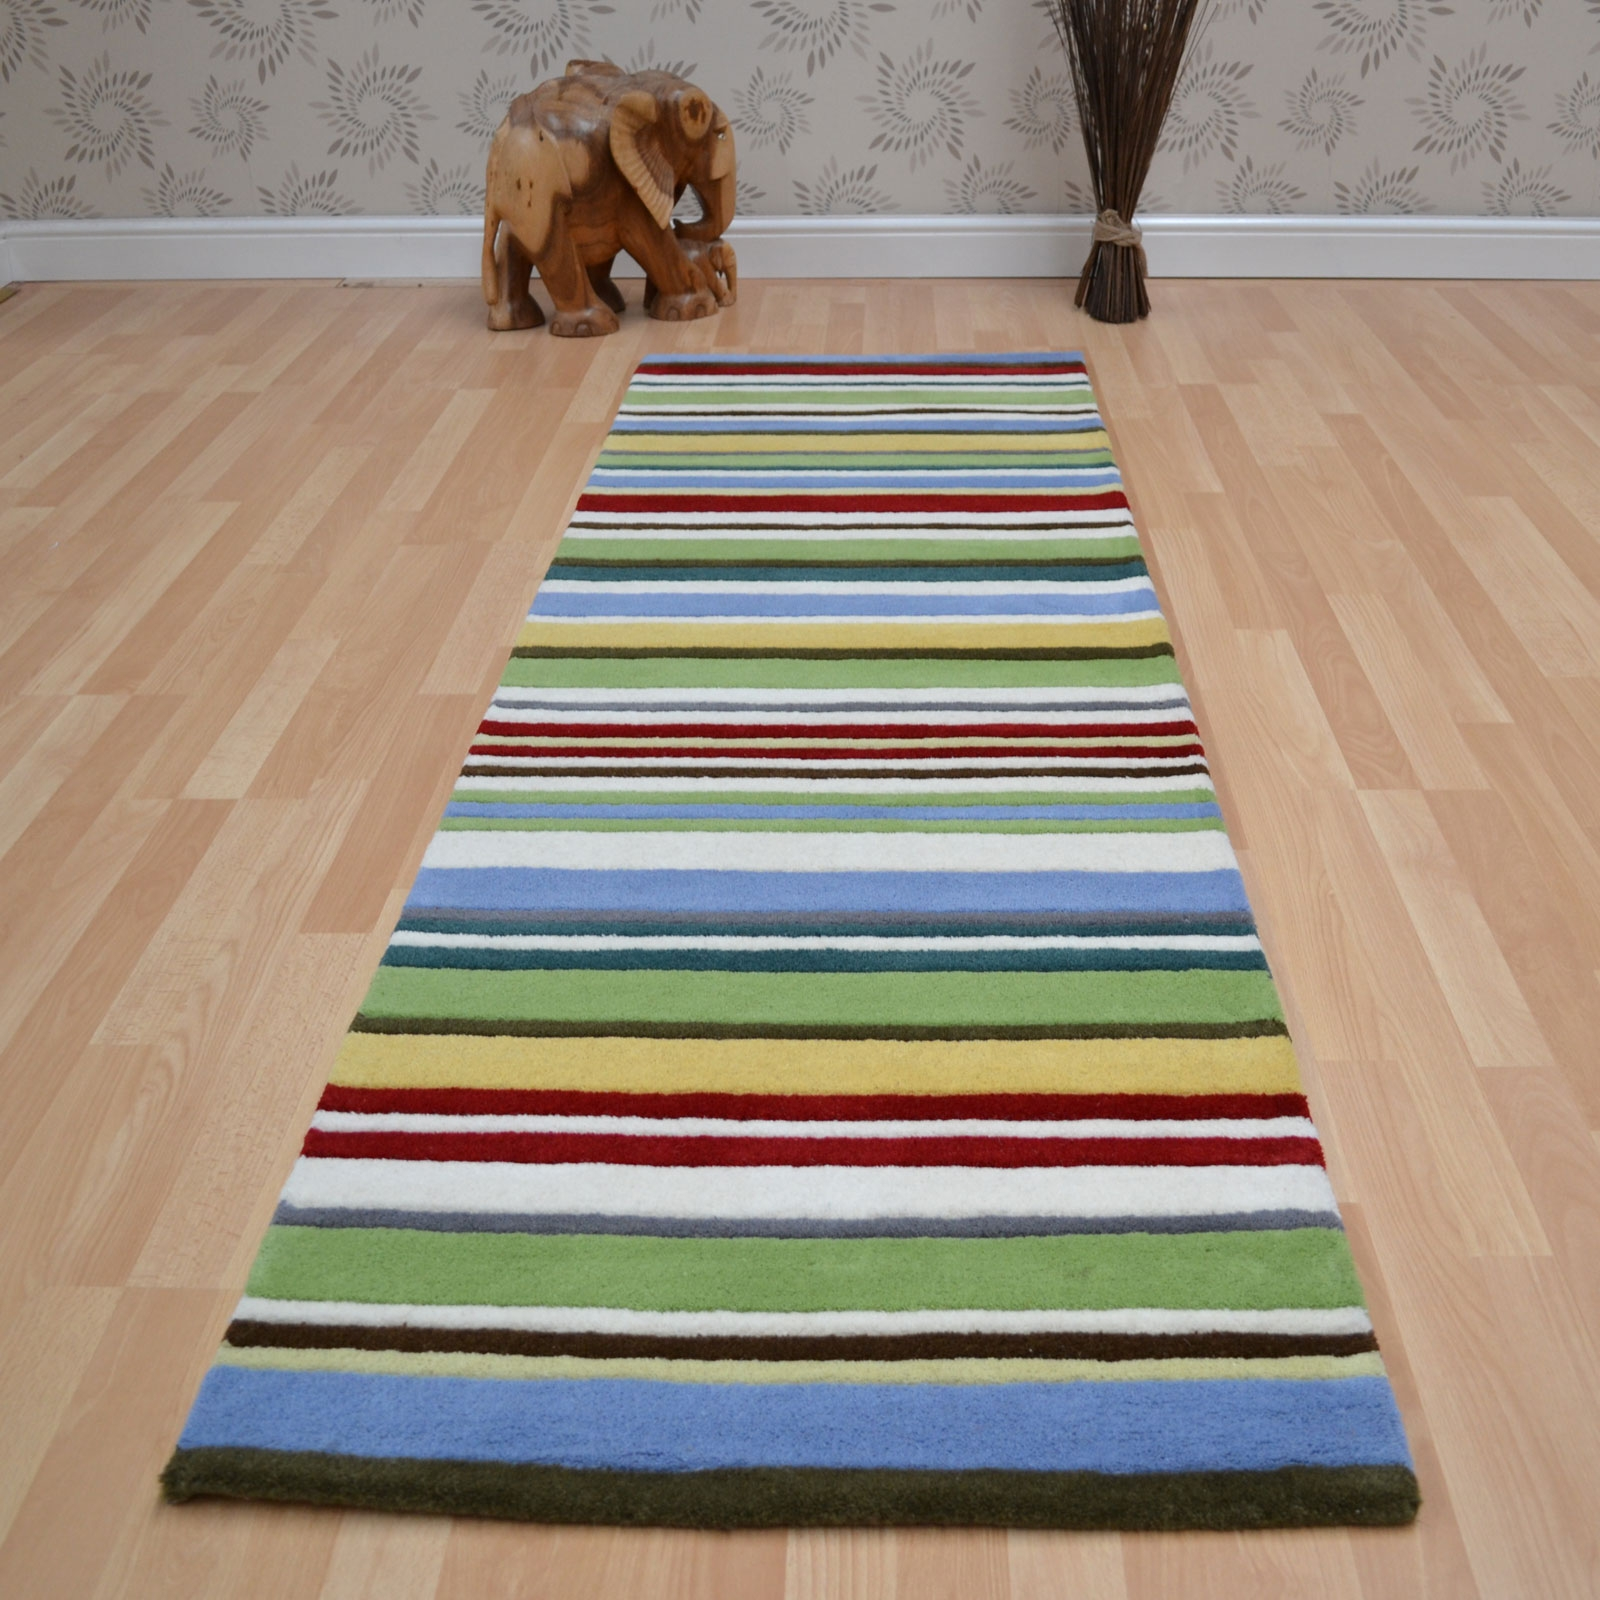 Hall Runner Rugs Uk Roselawnlutheran With Regard To Wool Hall Runners (Image 5 of 15)